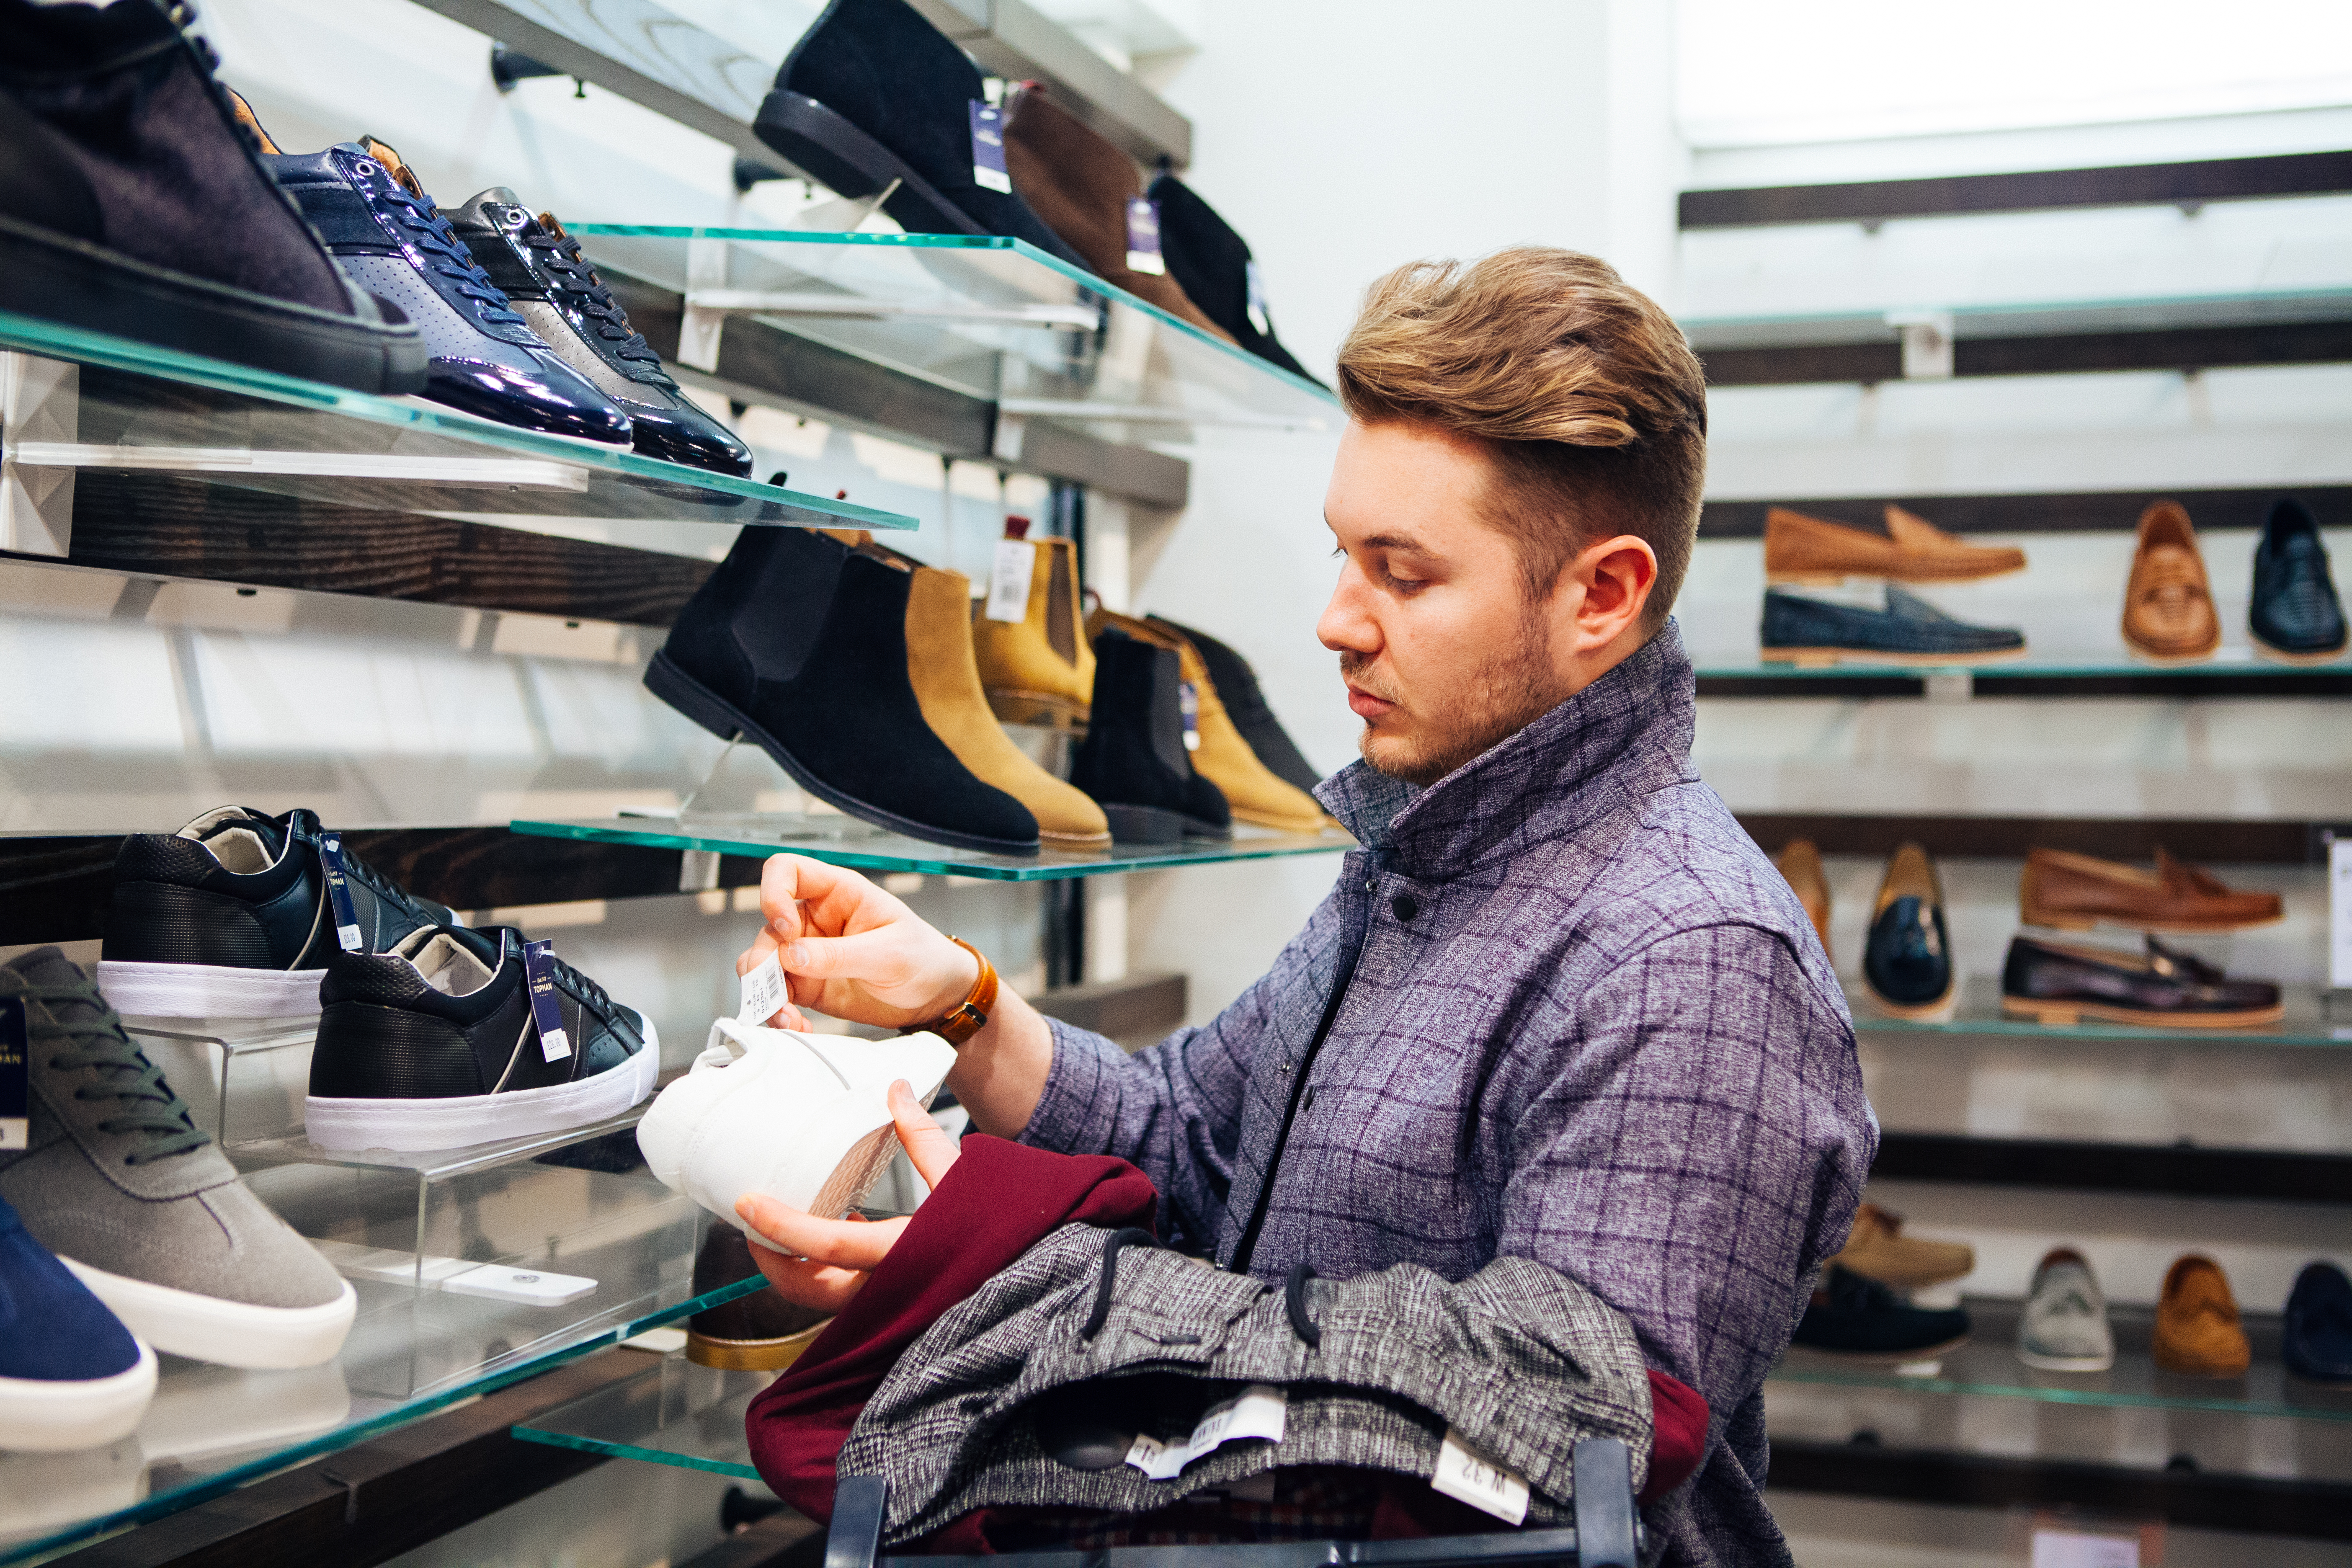 High Street Gent, About Us, What We Do, Man Looking At Shoes, Man Shopping, Male Blogger